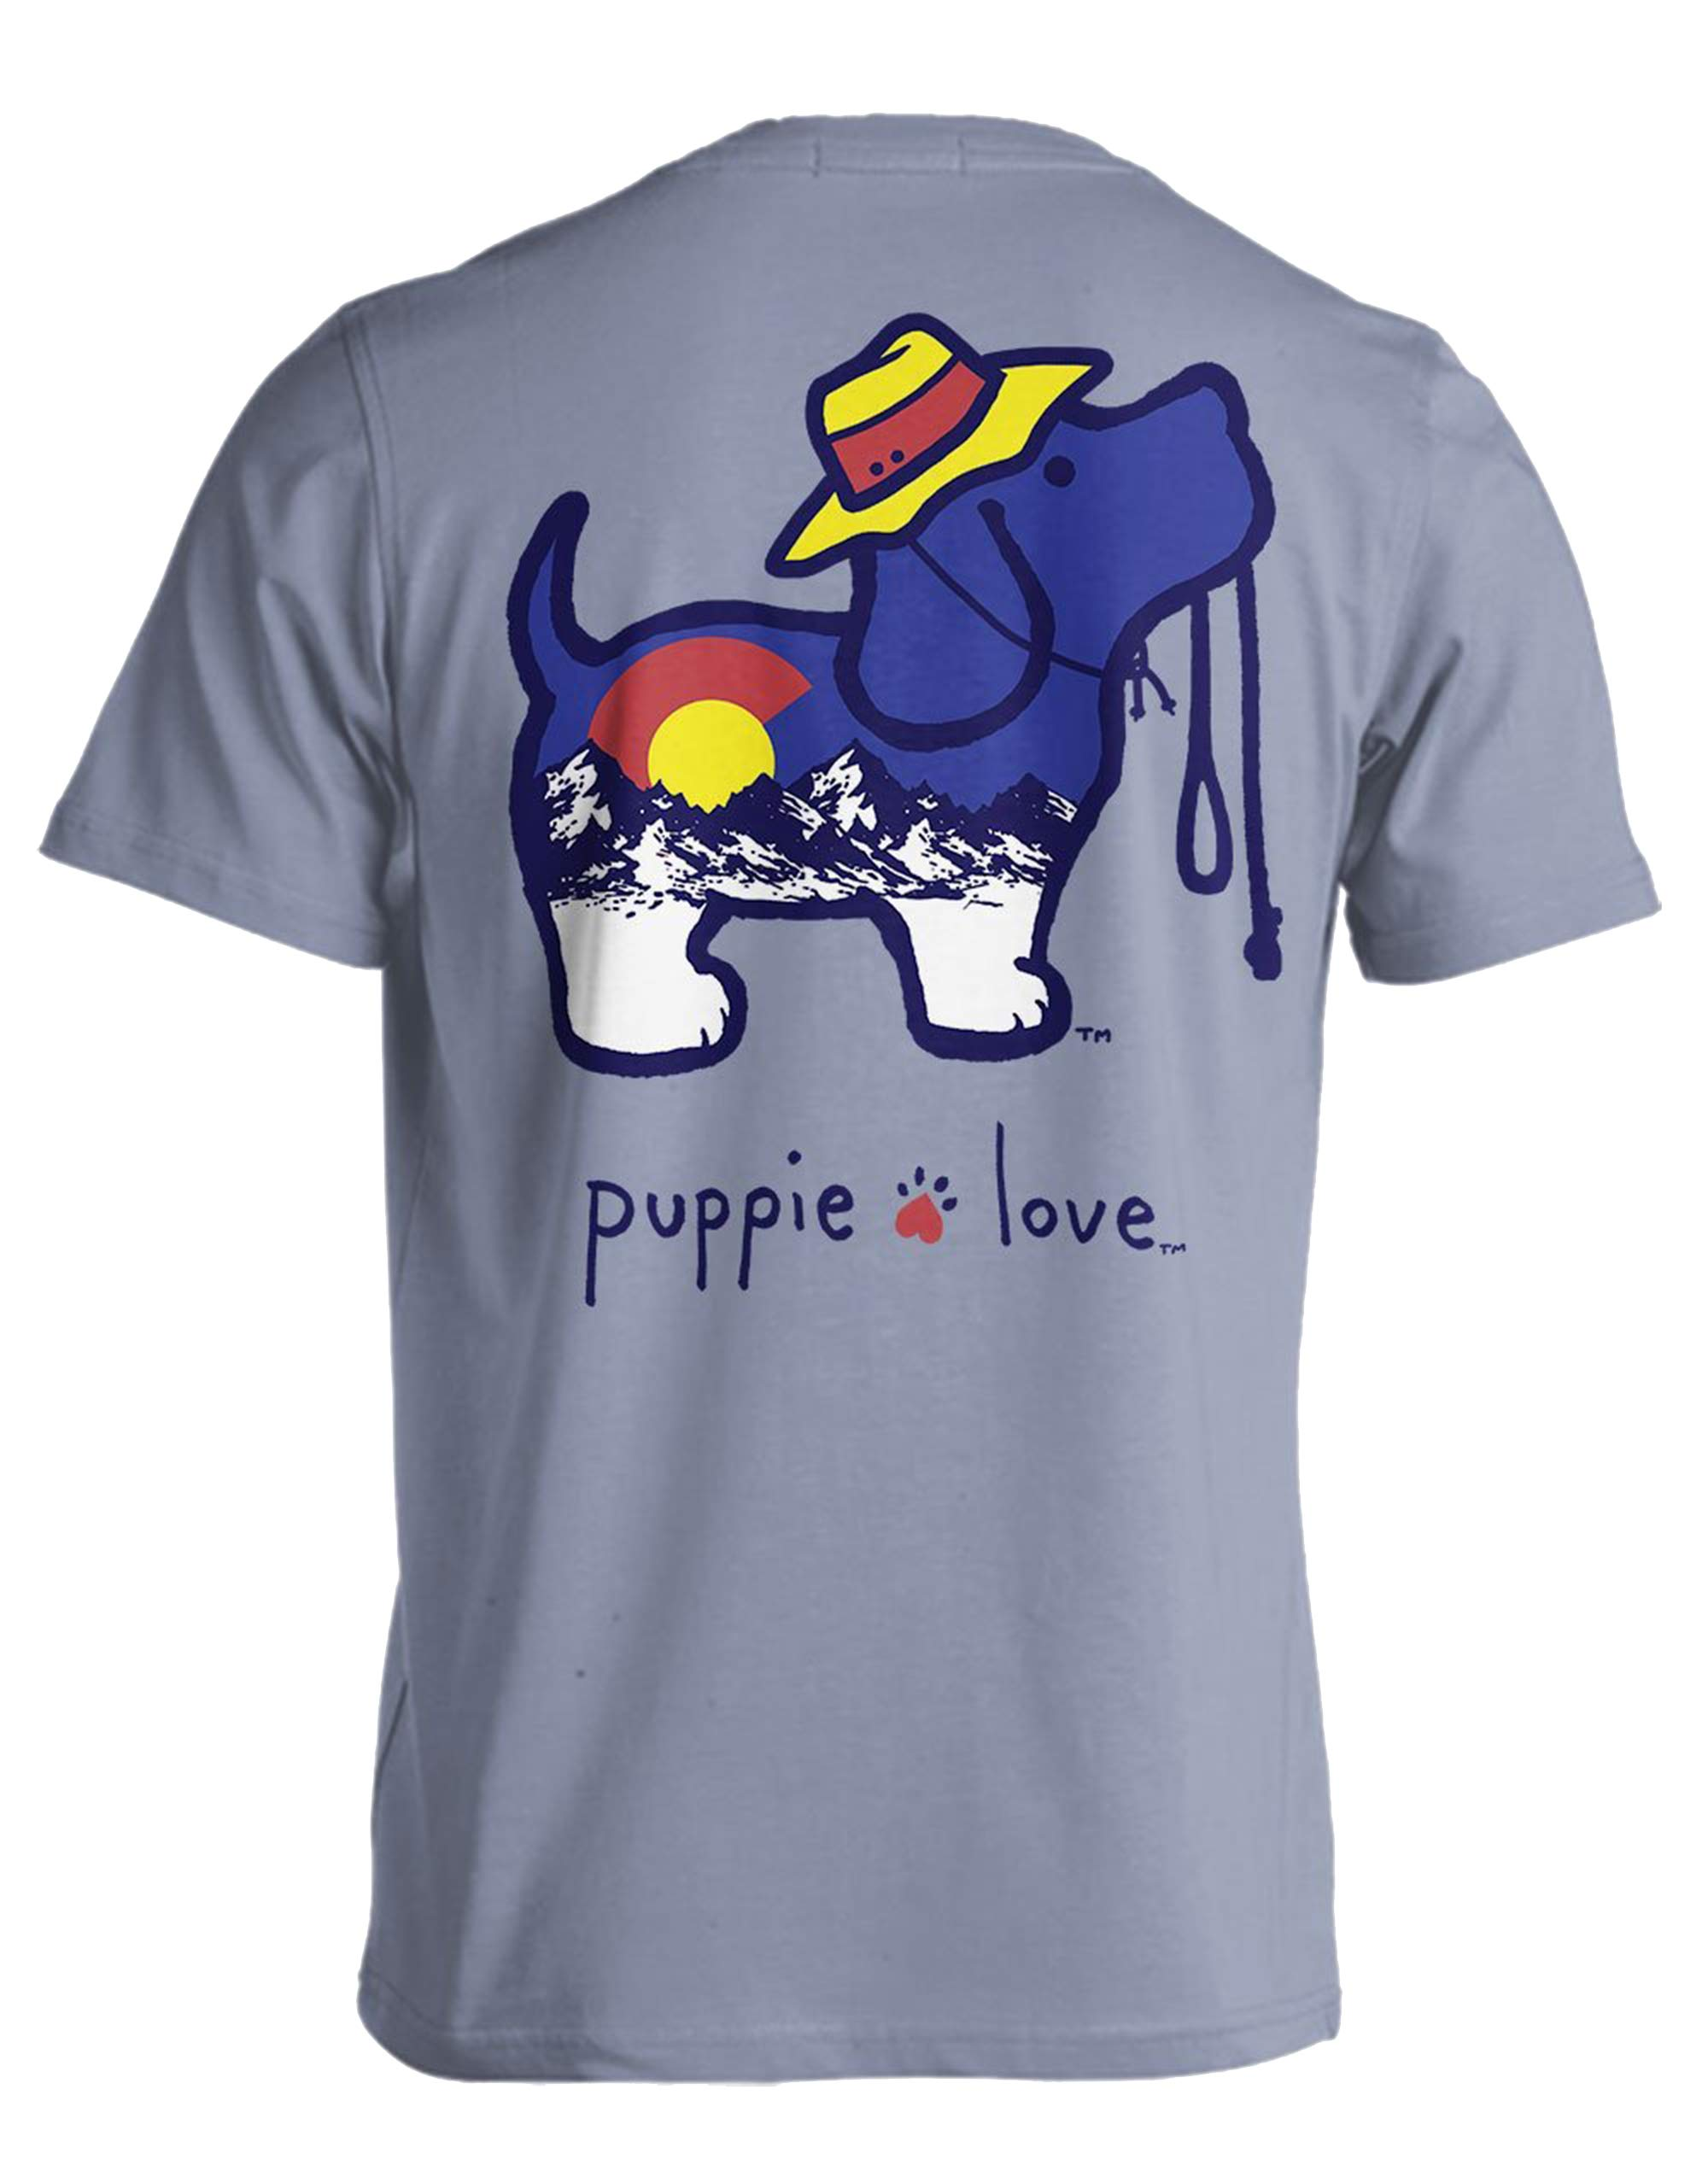 Puppie Love Colorado Pup Adult Short Sleeve T-Shirt-Large